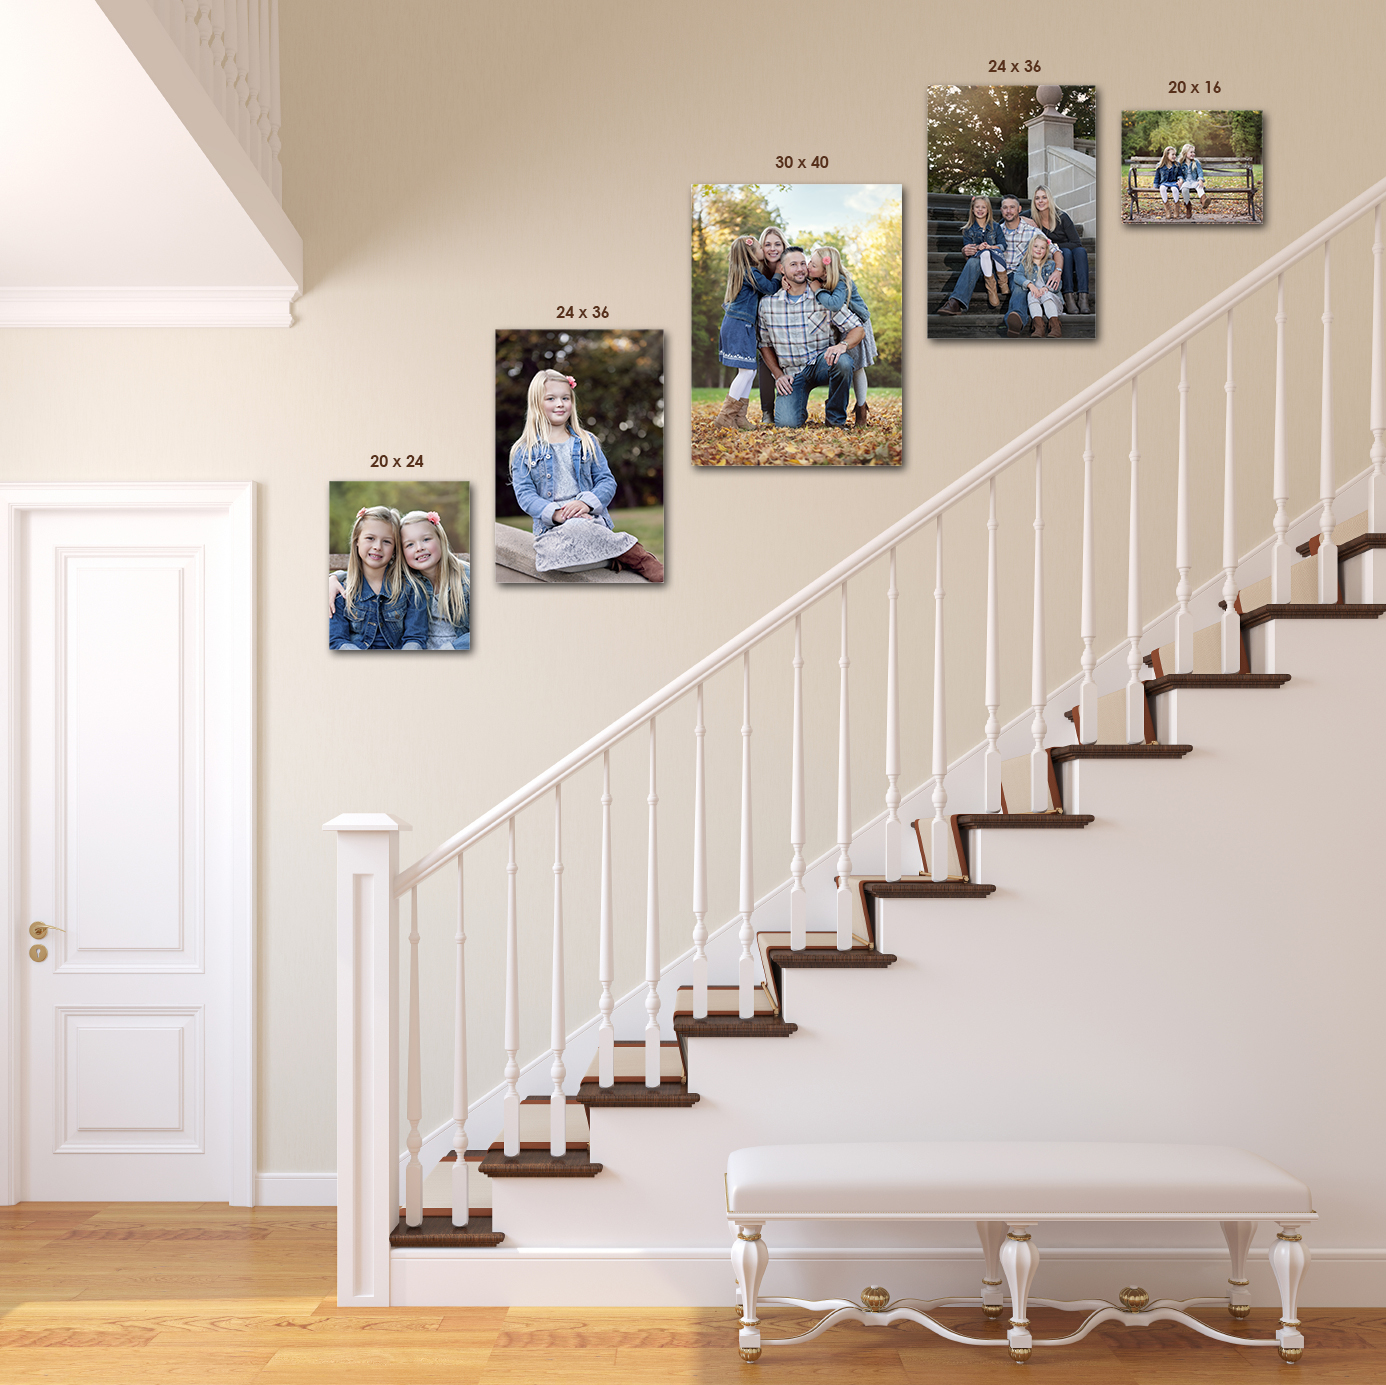 STAIR CLIMBER   (1) 20x24, (2) 24x36, (1) 30x40, (1) 20x16 Canvas Wrap .... $2,150    OR (1) 20x24, (3) 24x36, (30x40 not available in a ThinWrap), (1) 20x16 ThinWrap .... $1,350